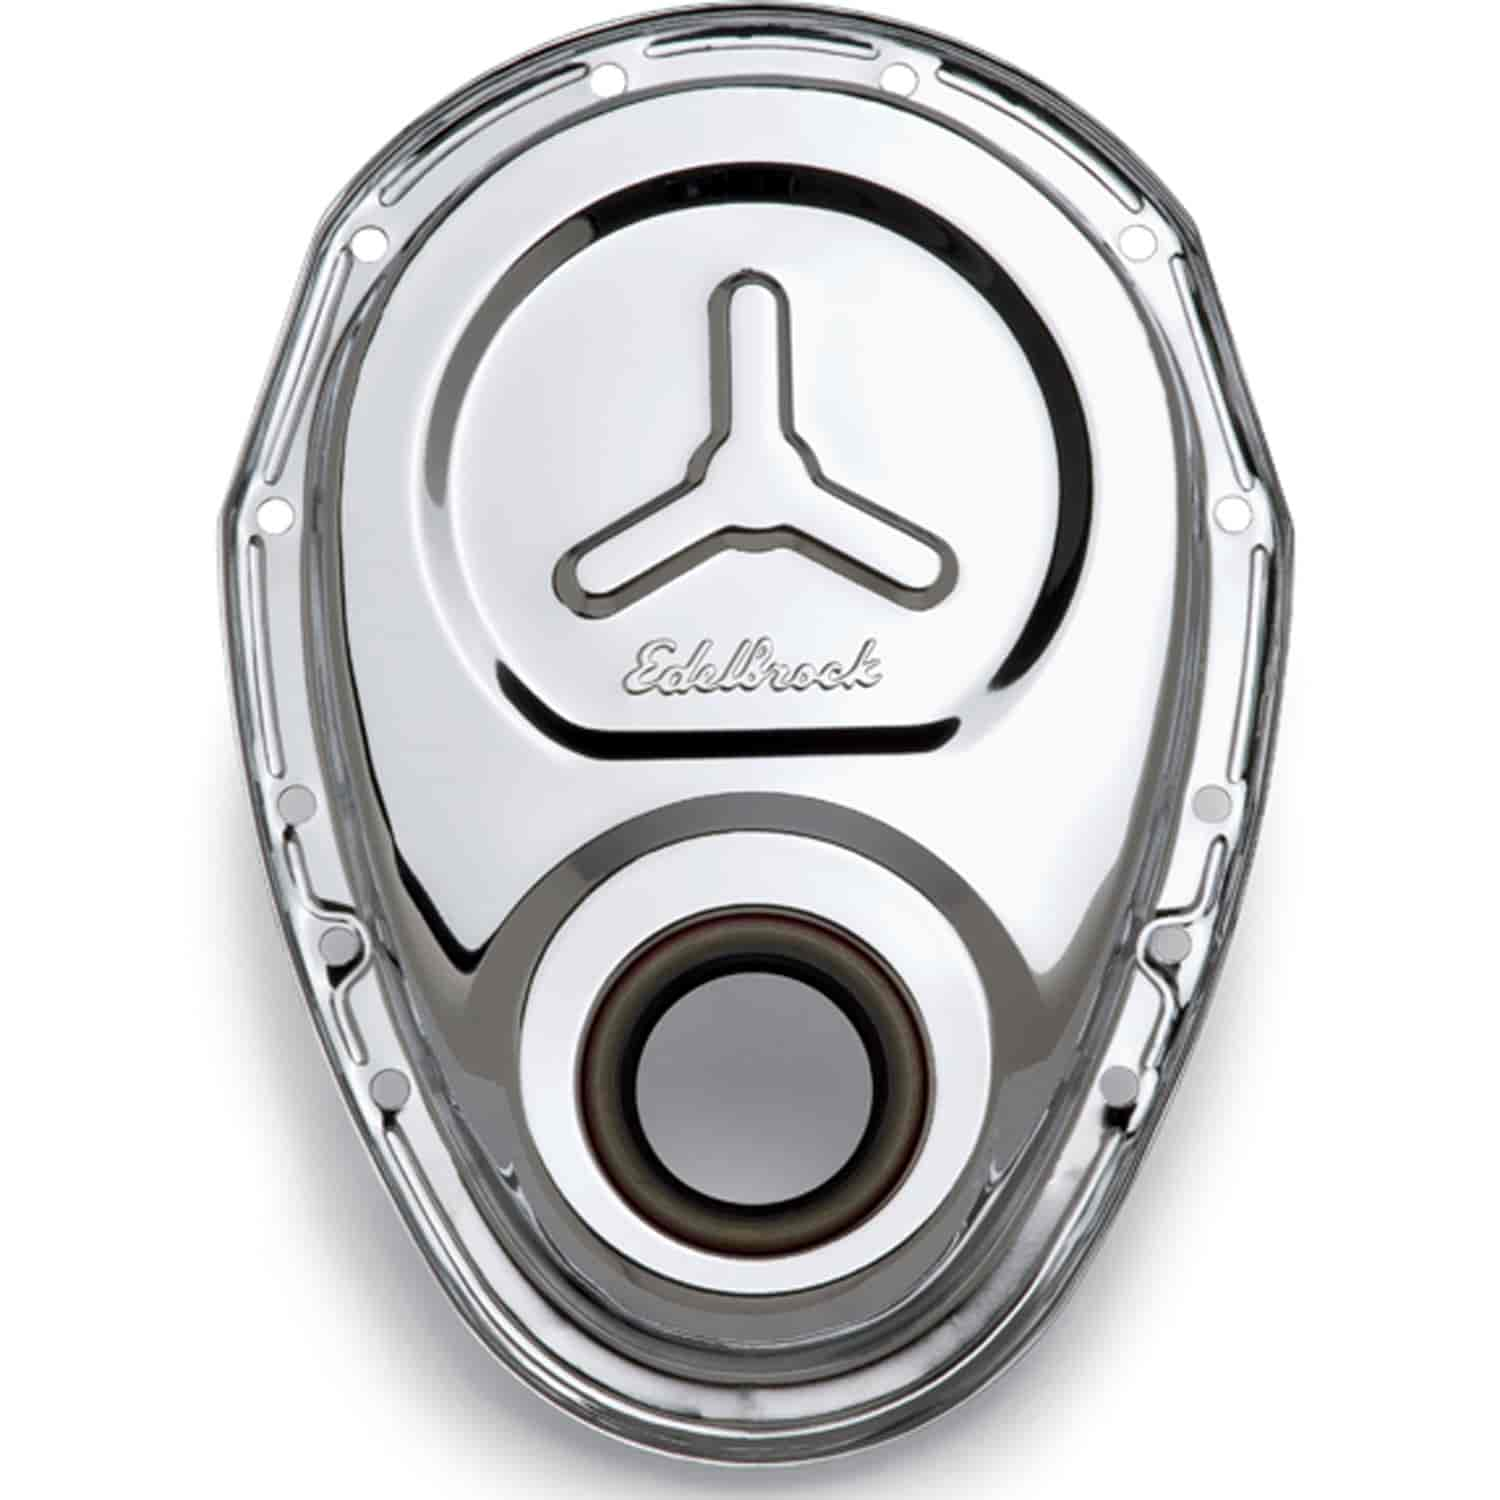 Edelbrock 4860 - Edelbrock Chrome Timing Chain Cover